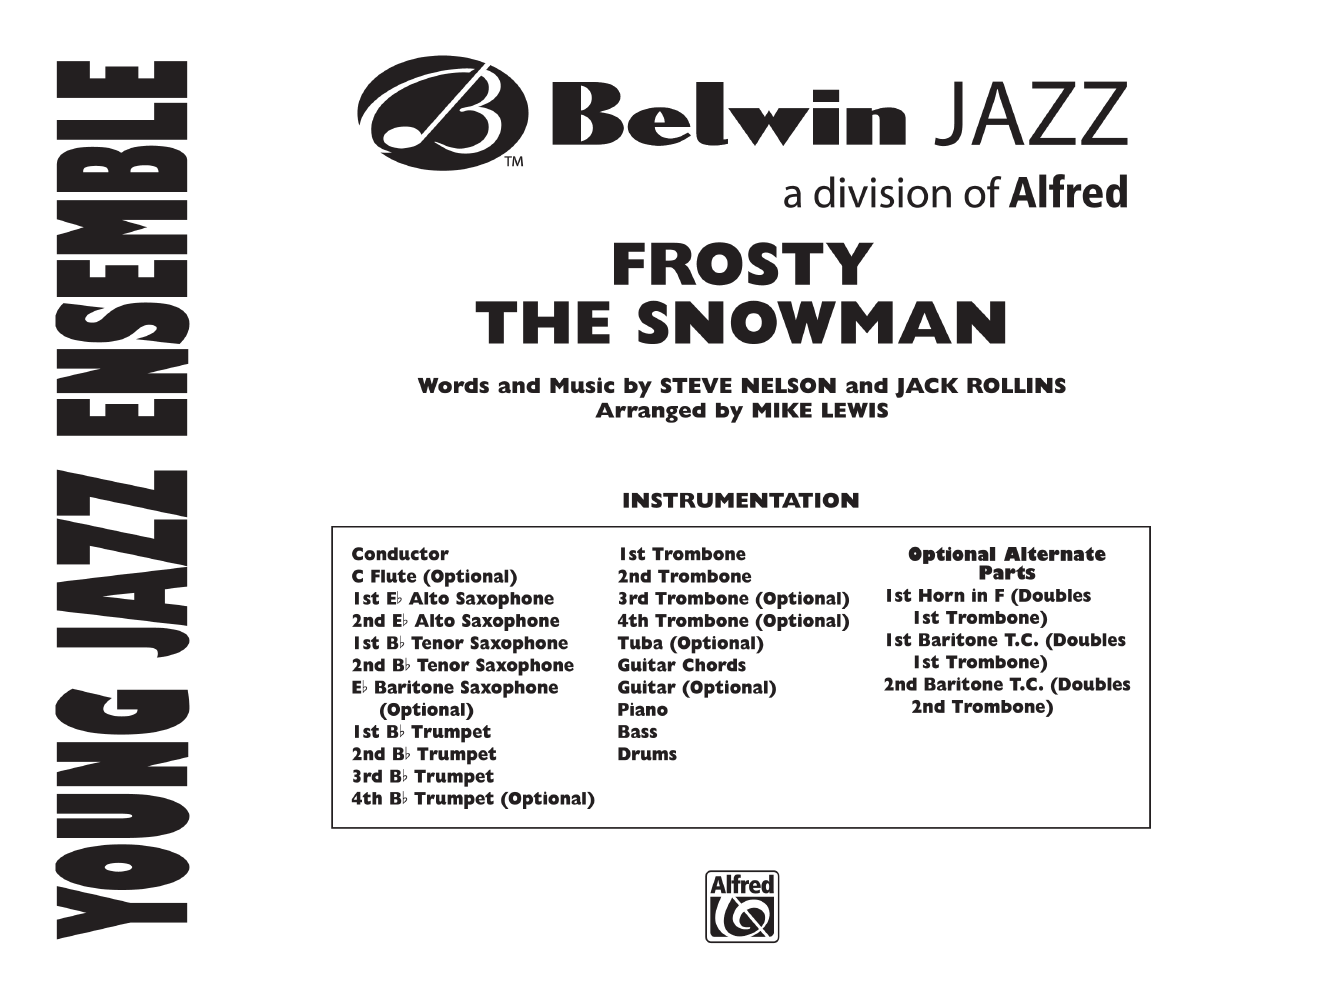 photograph regarding Frosty the Snowman Sheet Music Free Printable referred to as Frosty the Snowman arr. Mike Lewis J.W. Pepper Sheet New music